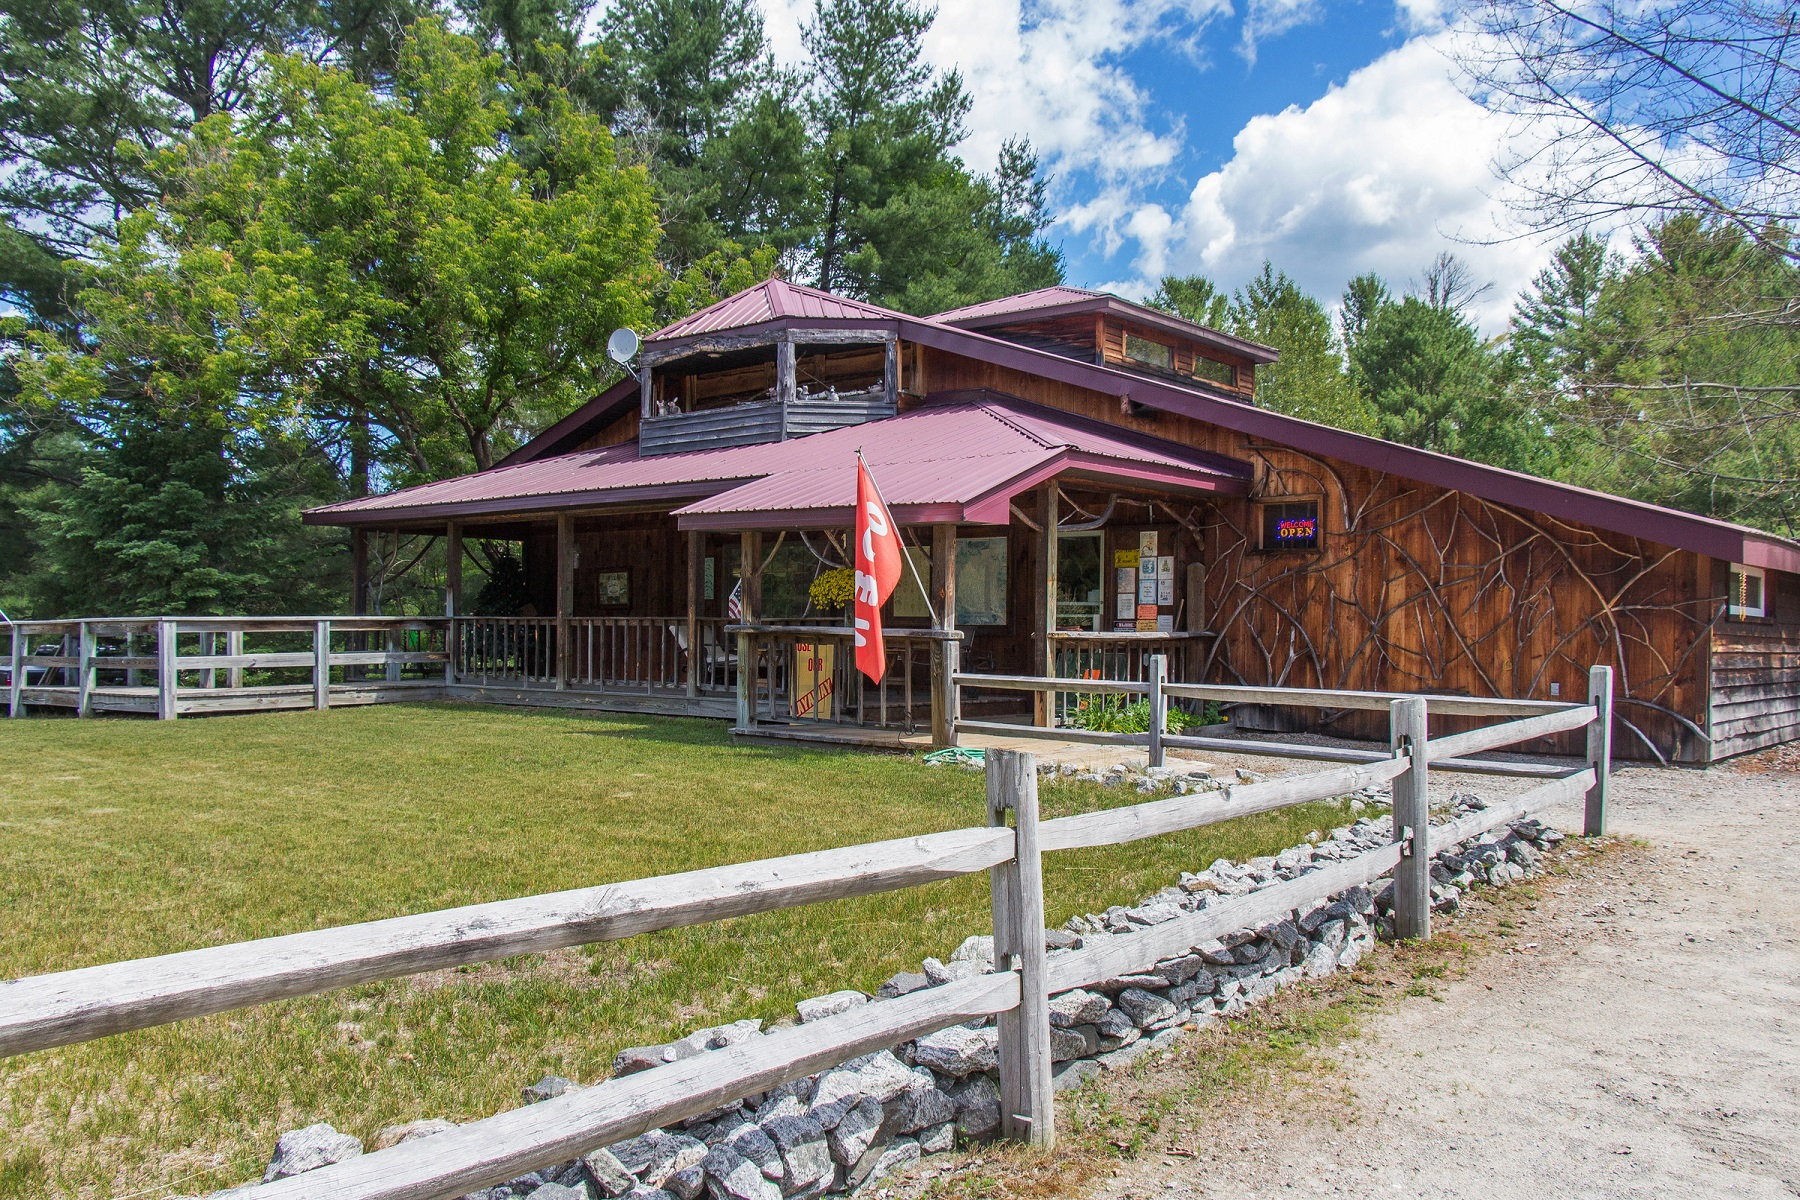 Additional photo for property listing at Discoveries 4498  State Route 9 瓦伦斯煲, 纽约州 12885 美国